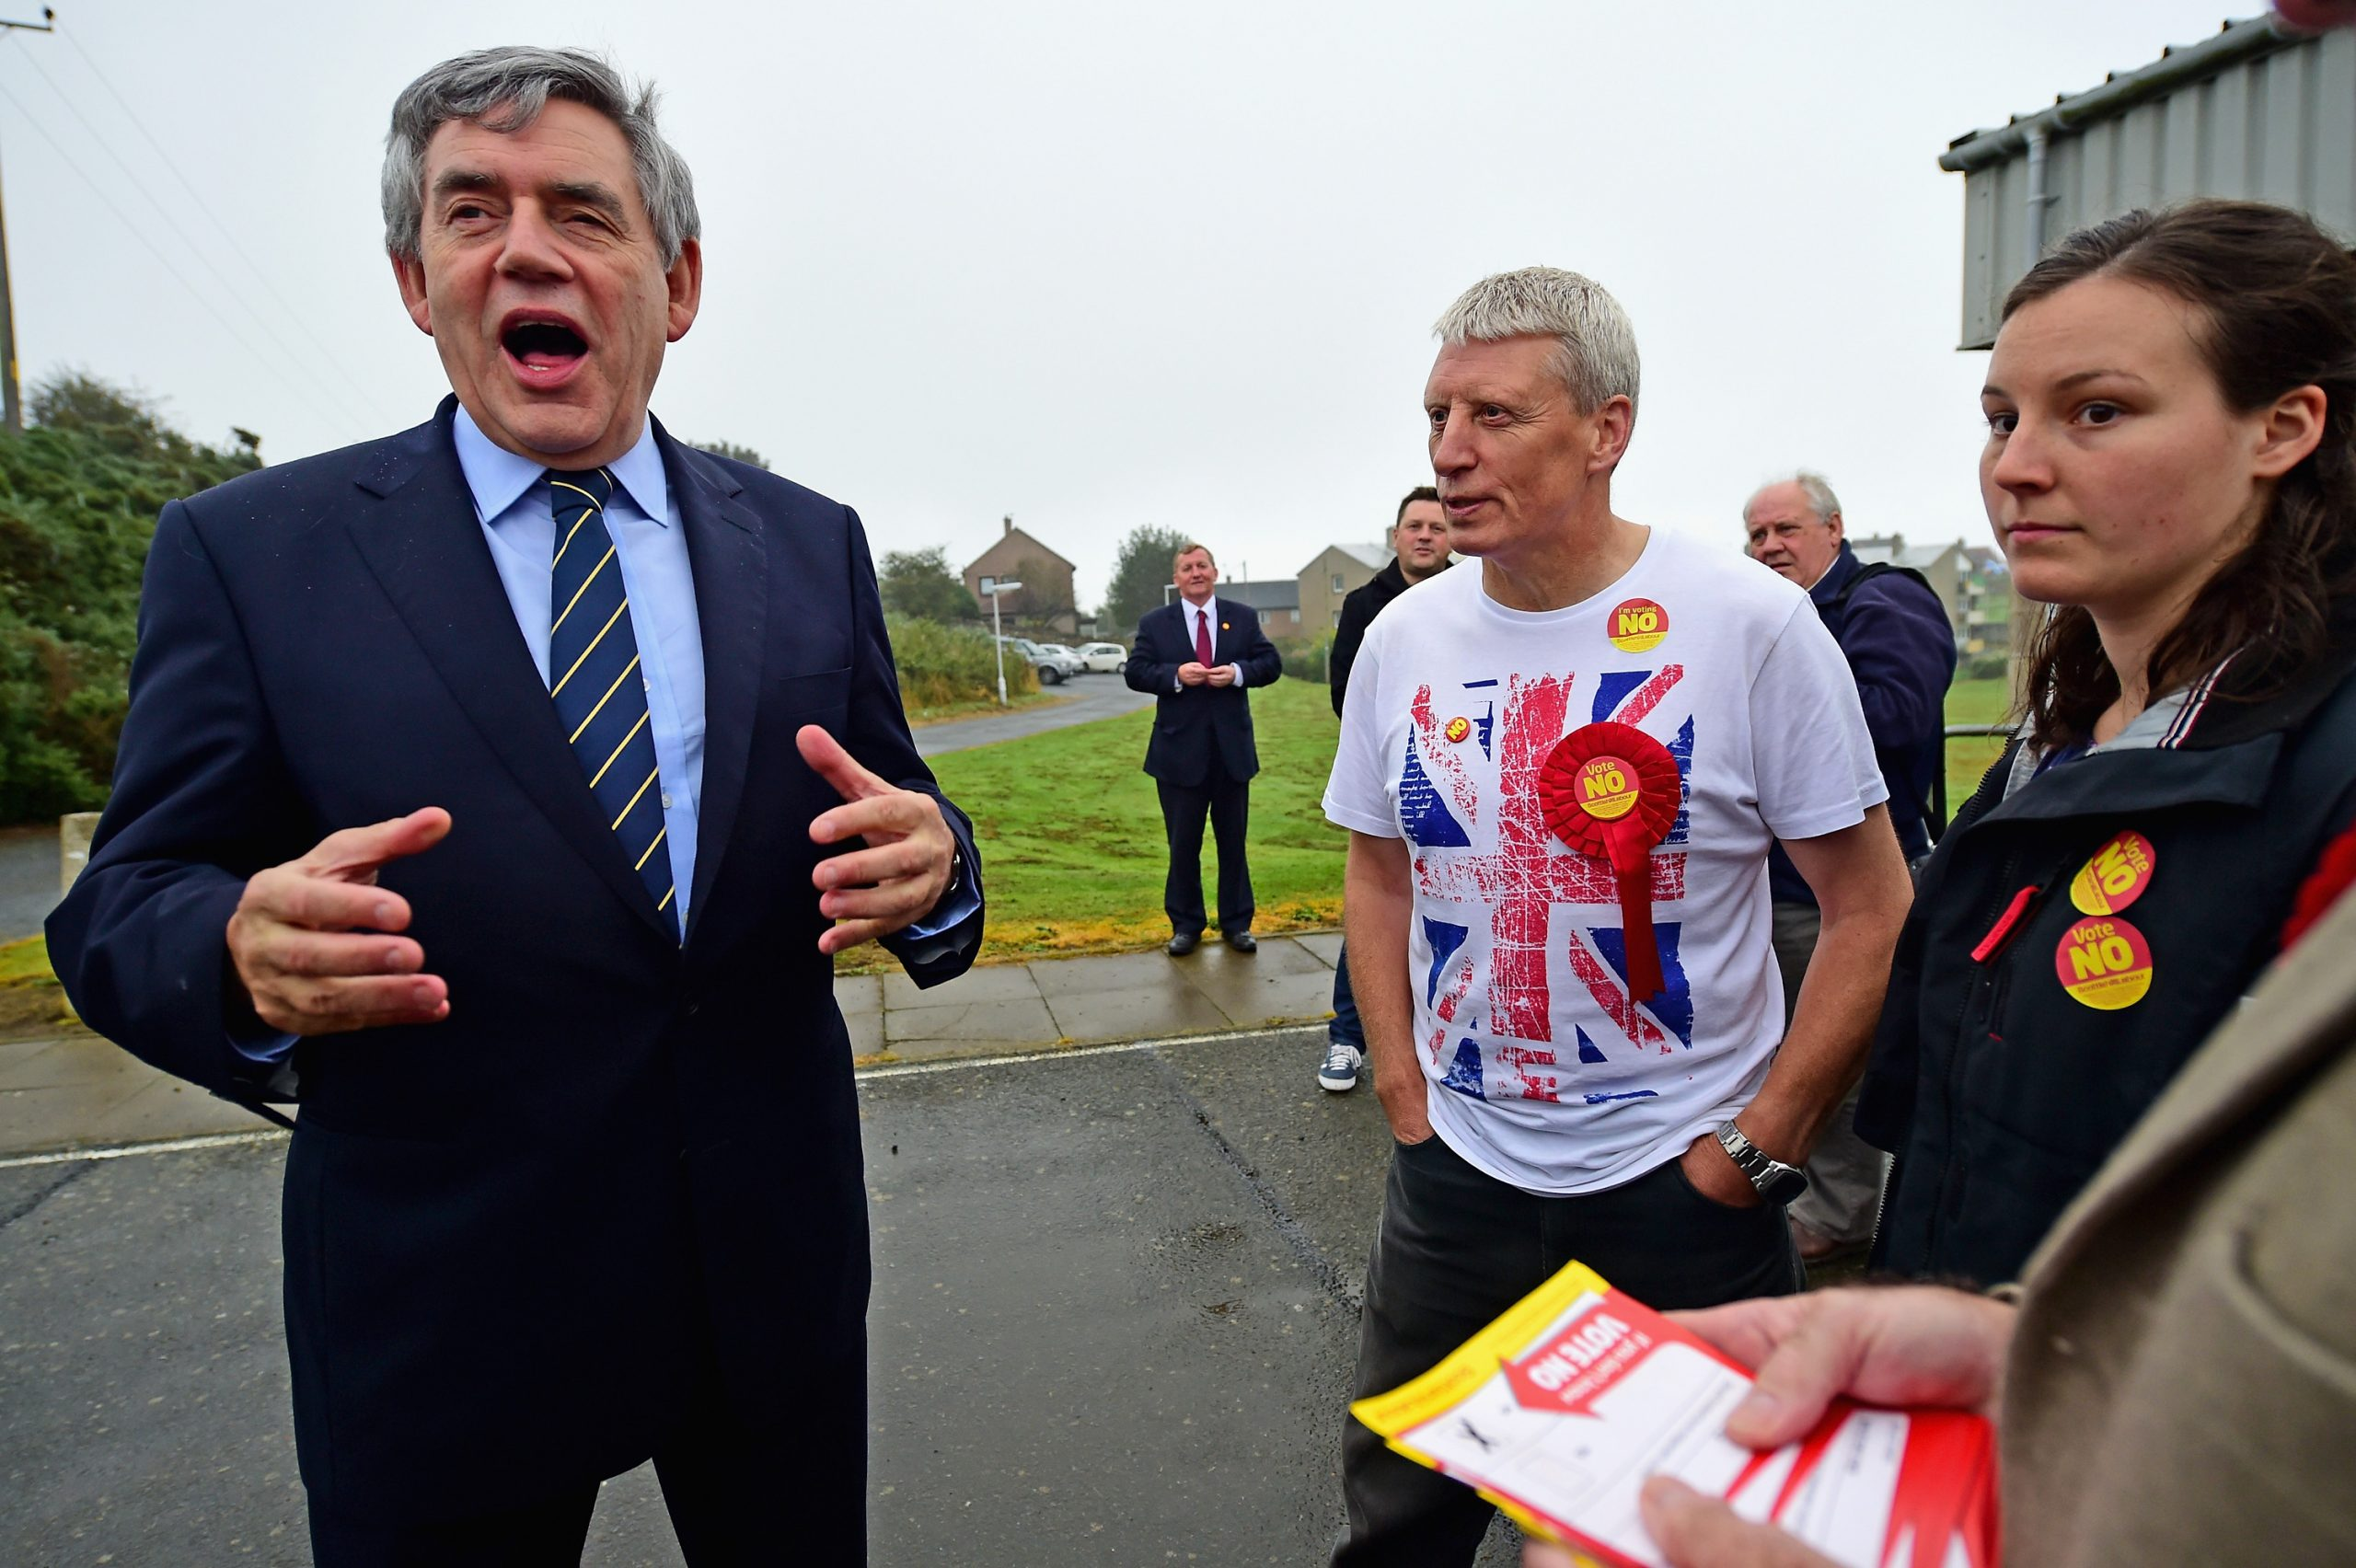 Former British Prime Minister Gordon Brown visits a polling station at North Queensferry Community Center in North Queensferry, Scotland.